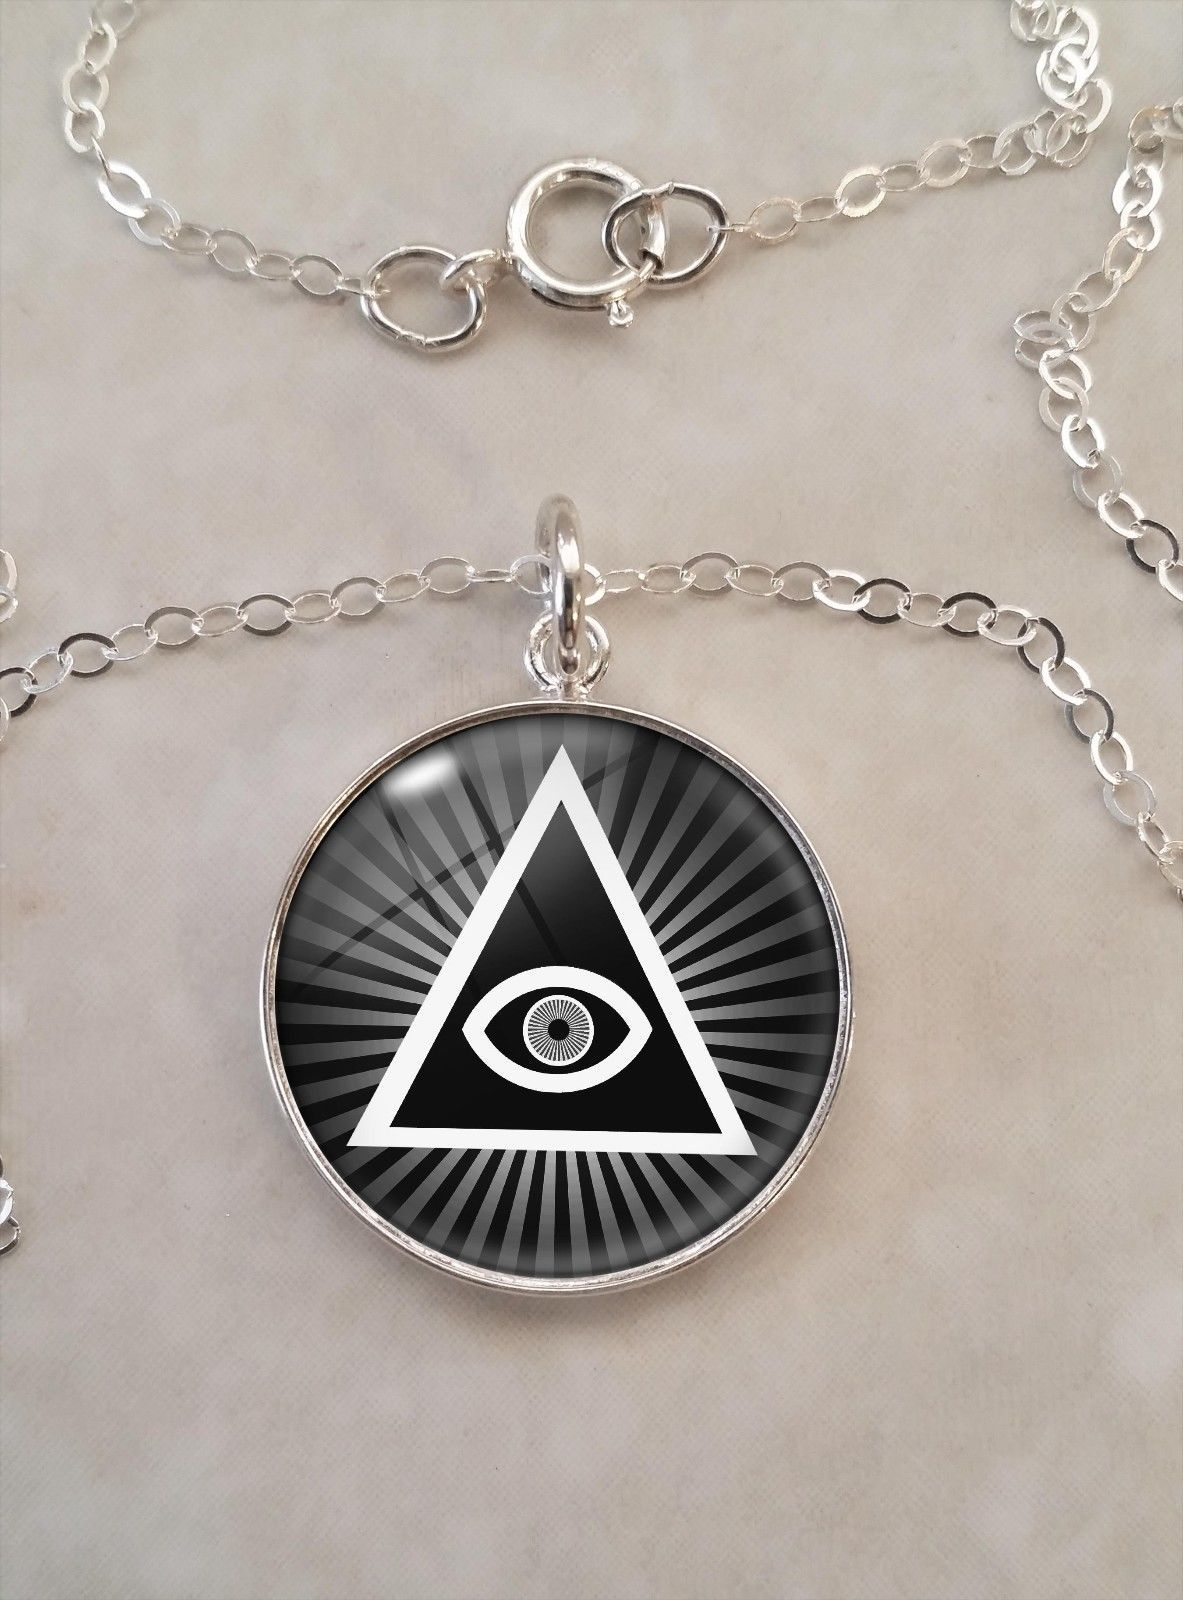 Primary image for Sterling Silver Pendant Illuminati All Seeing Eye Pyramid